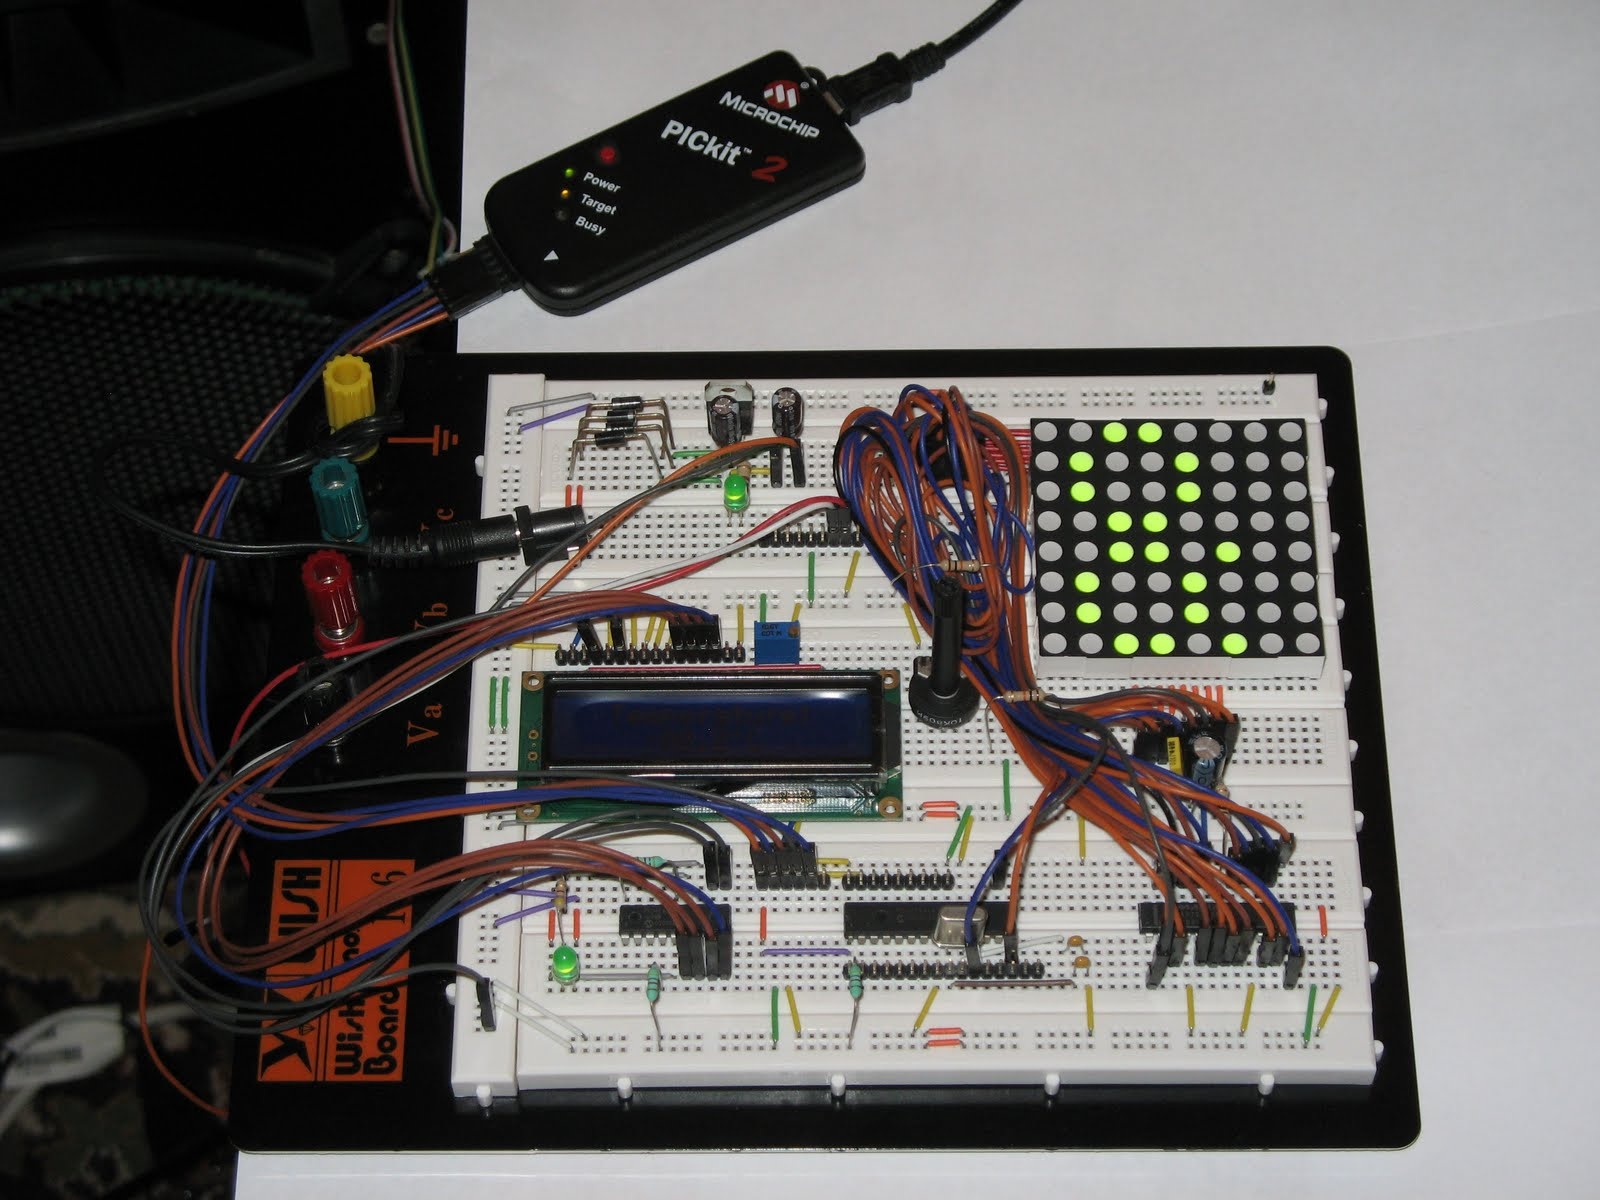 Electronic Experiments Dot Matrix Led 8x8 Max 7219 Pic16f628 4 Rgb Pwm Controller Physical Realization Is Carried Out On The Breadboard With 2420 Dots Example Made By Me Can Be Studied Below